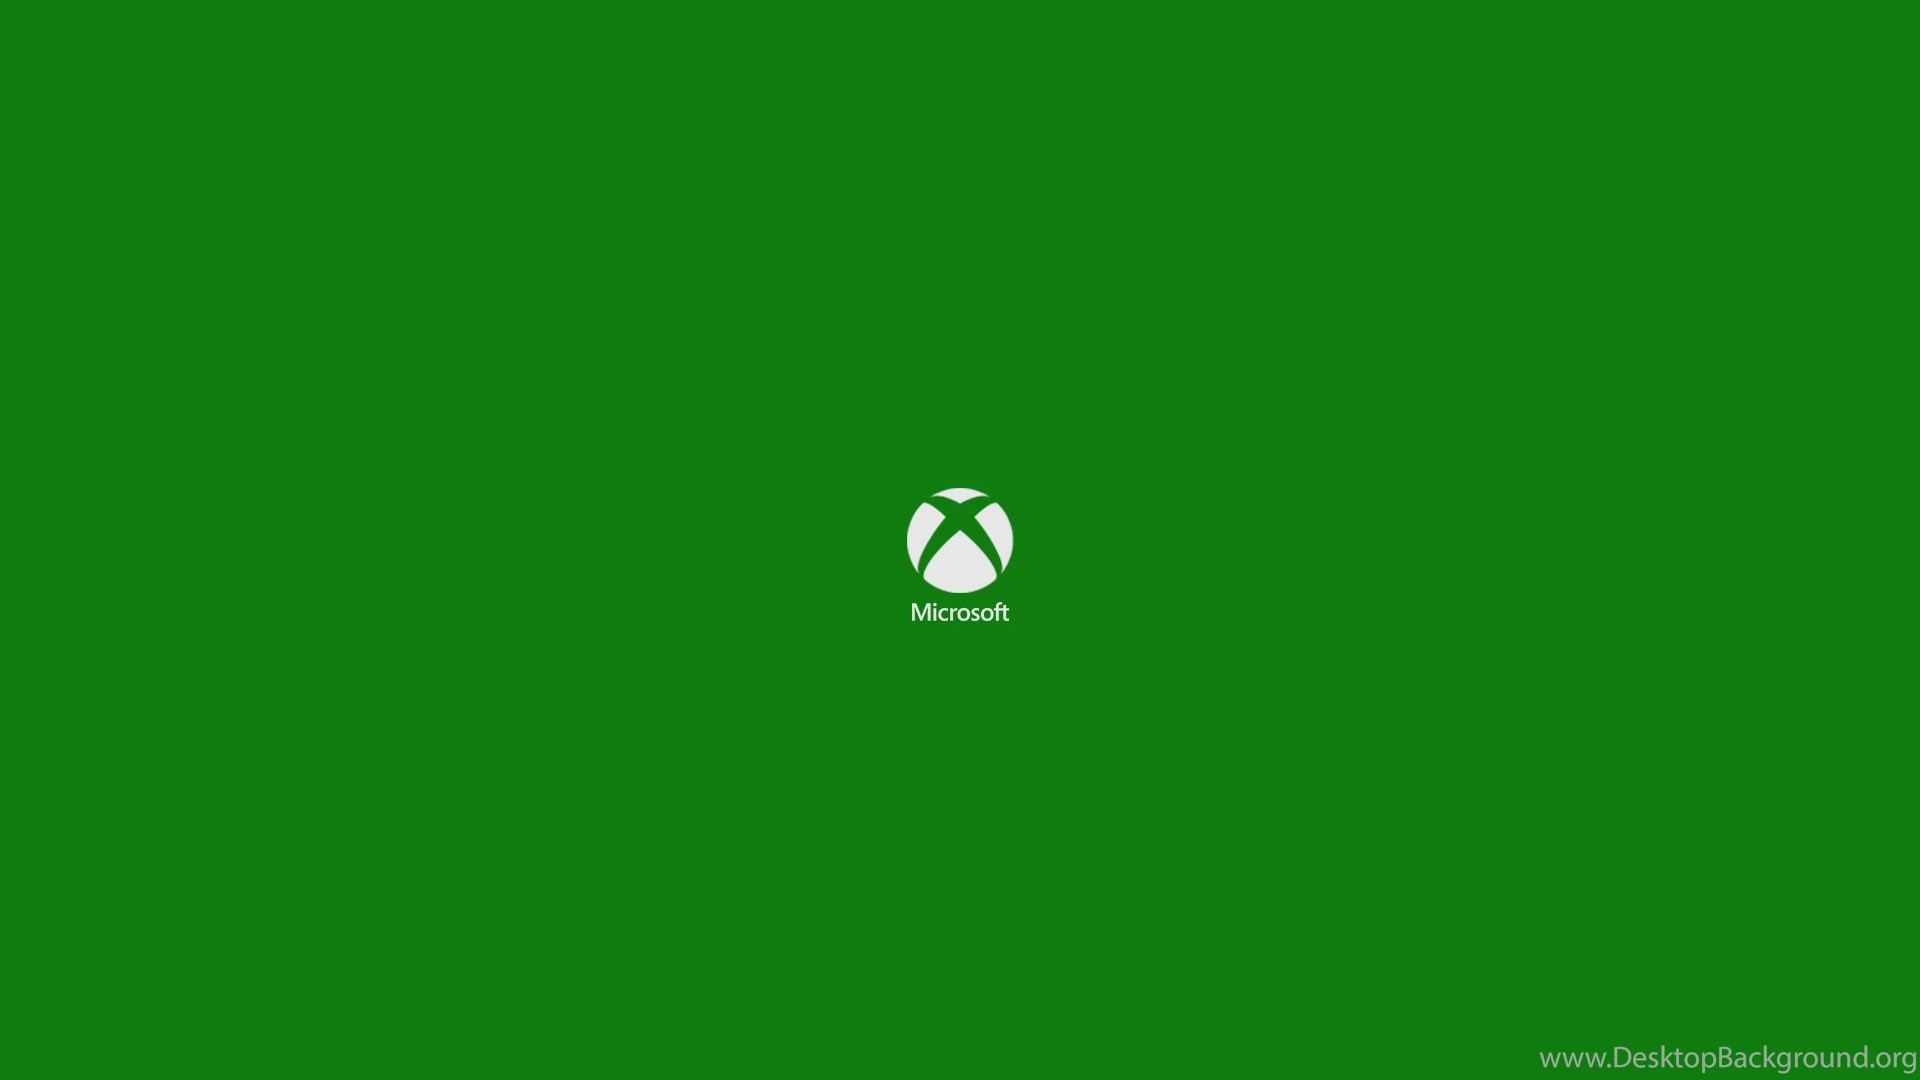 Xbox one logo wallpaper desktop background - Xbox one wallpaper ...